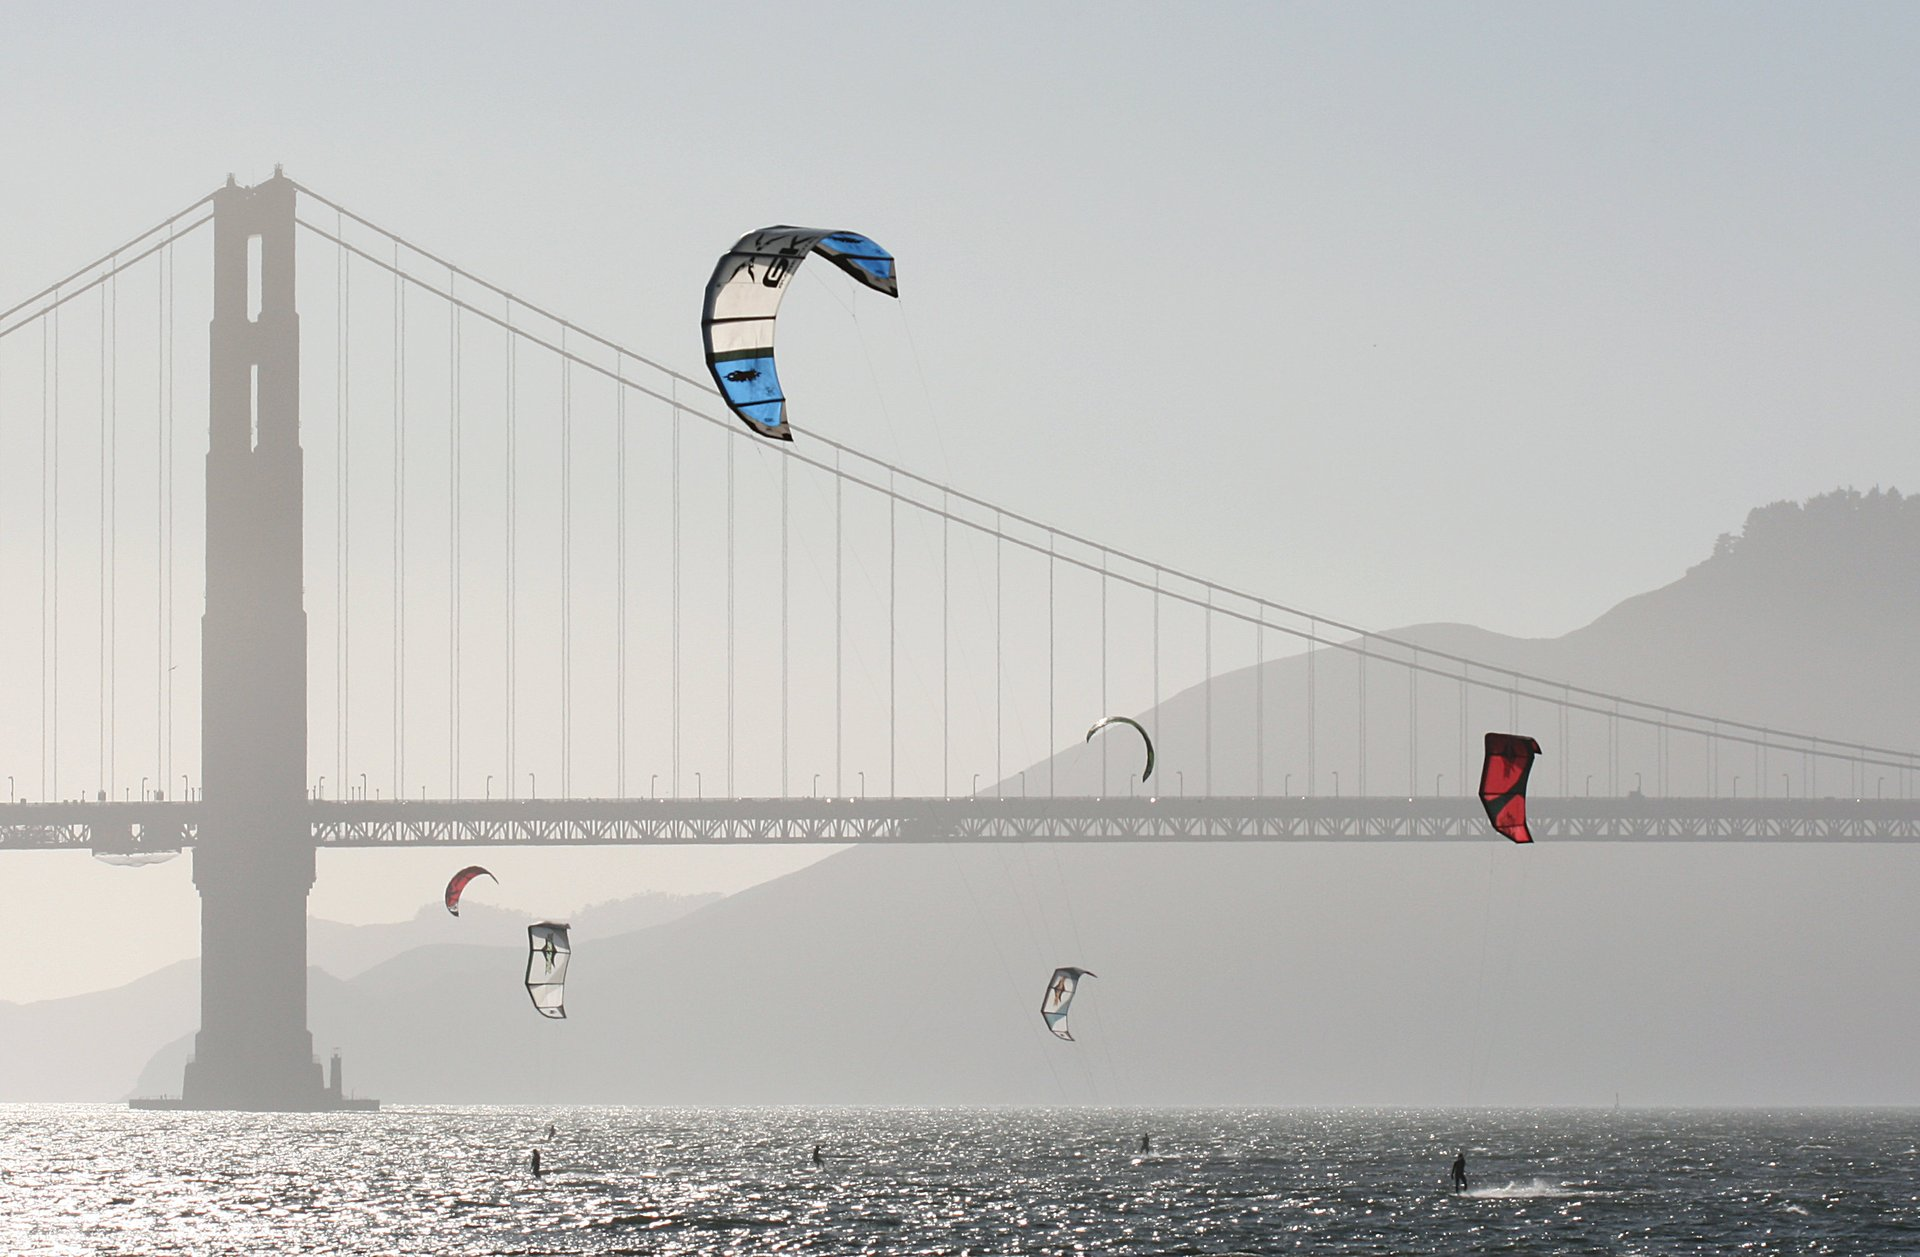 Kitesurfing and Windsurfing in San Francisco 2020 - Best Time